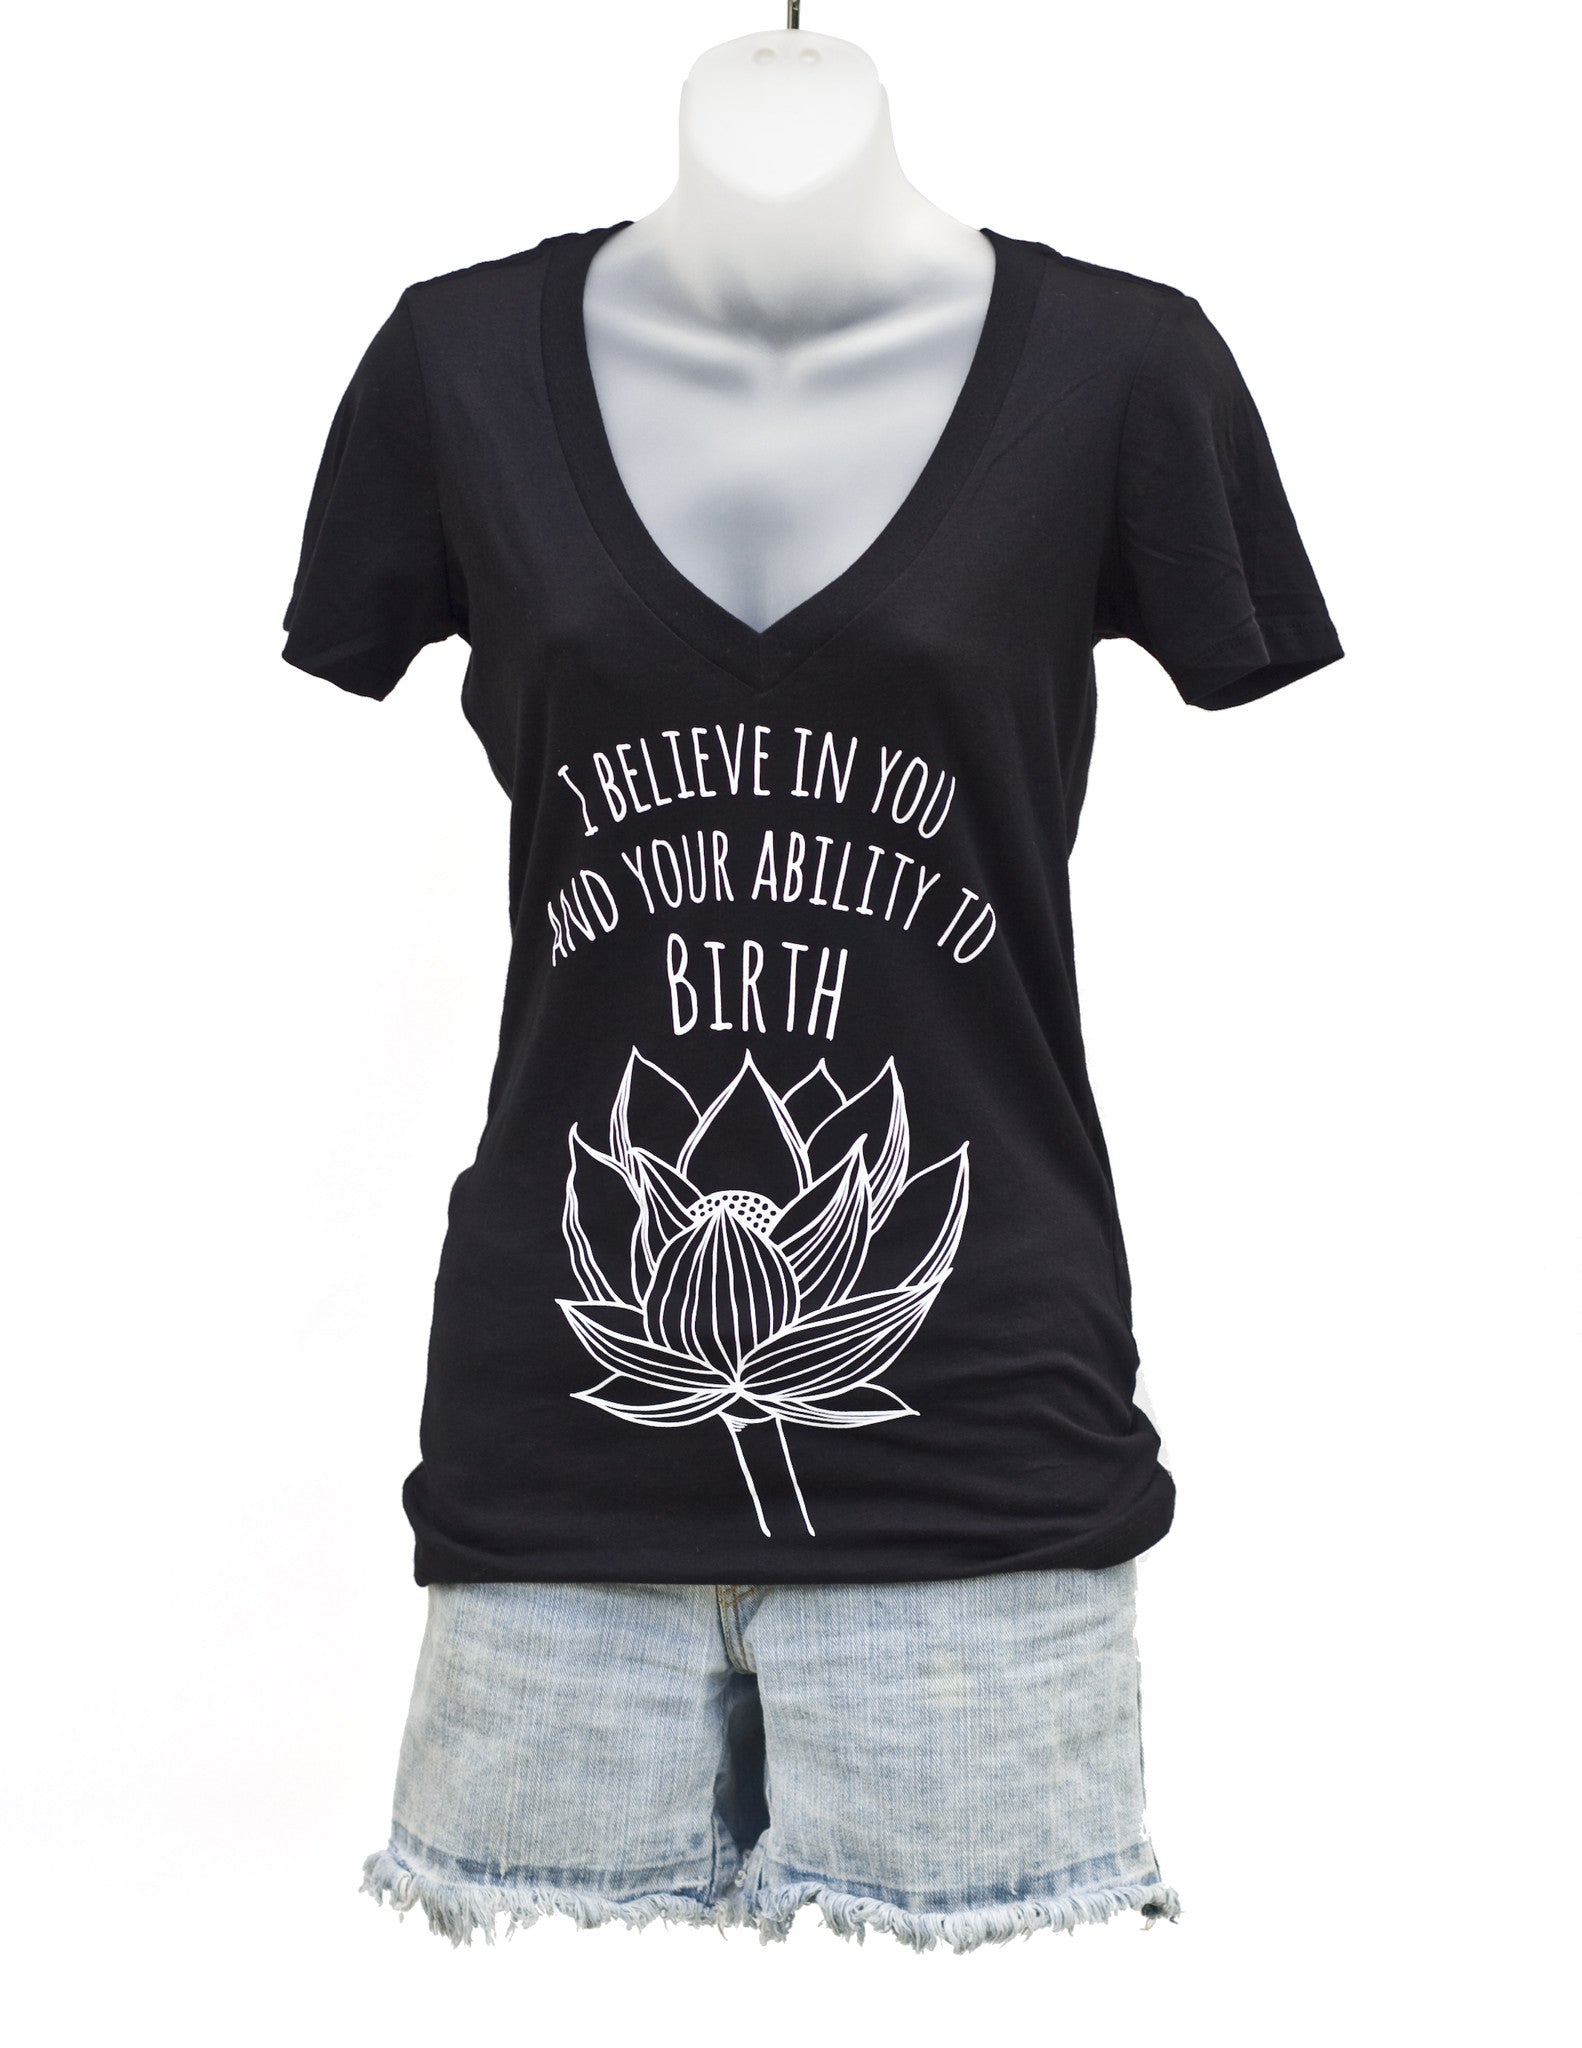 """I Believe in You"" Birth Affirmation V-Neck Shirt in Black"